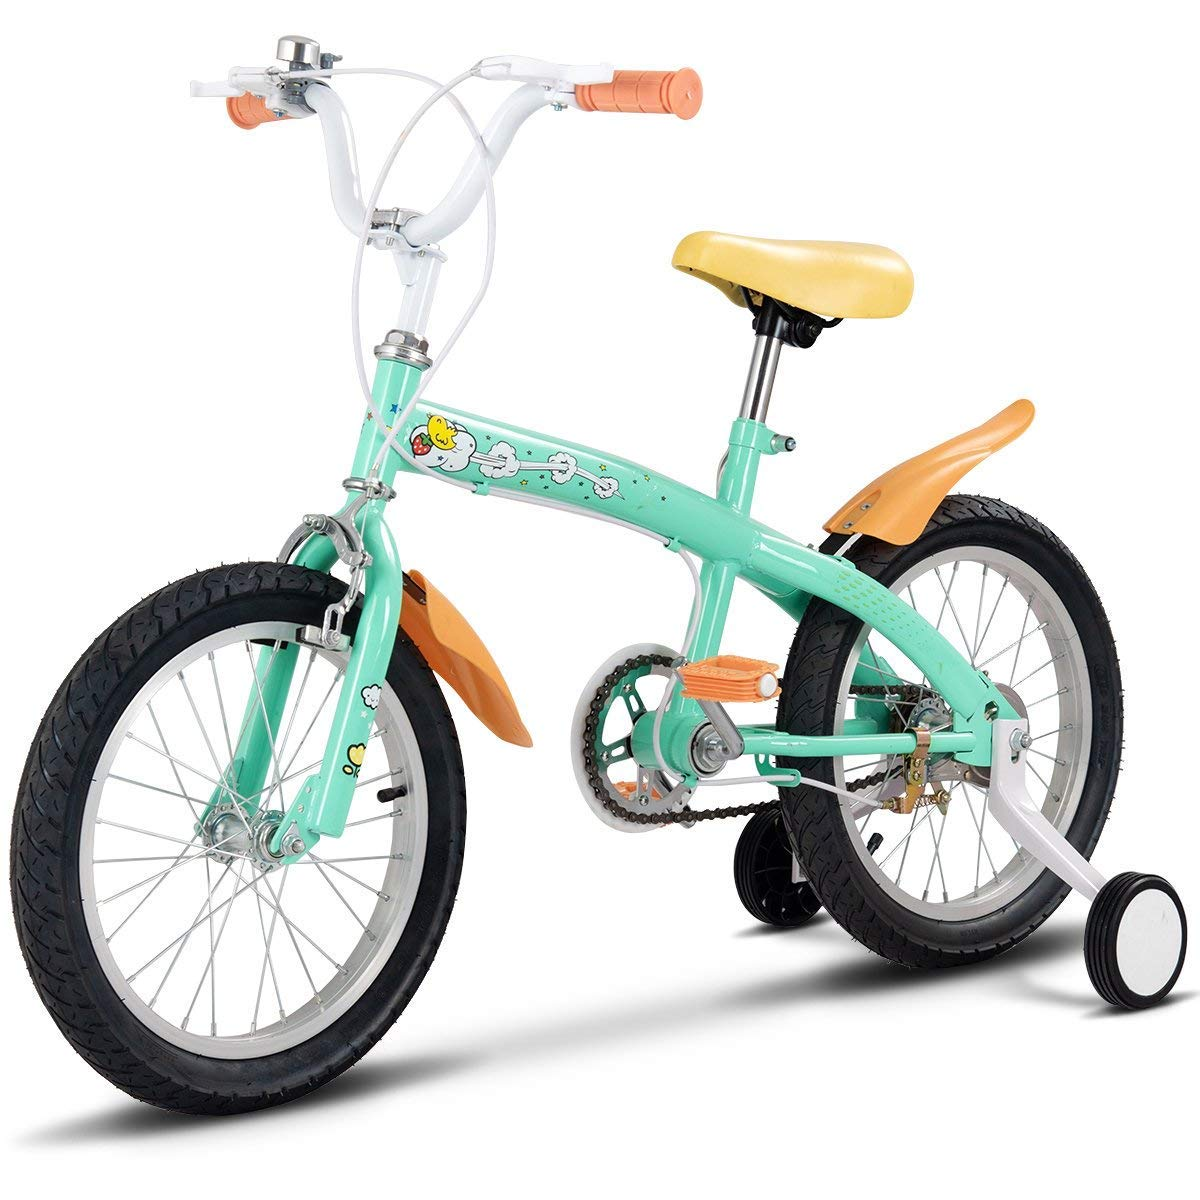 Costzon Kids Bike, Bicycle with Training Wheels & Hand Brake for Boys and Girls,12-16 Inch, Green, Pink, Yellow (Green, 16'')